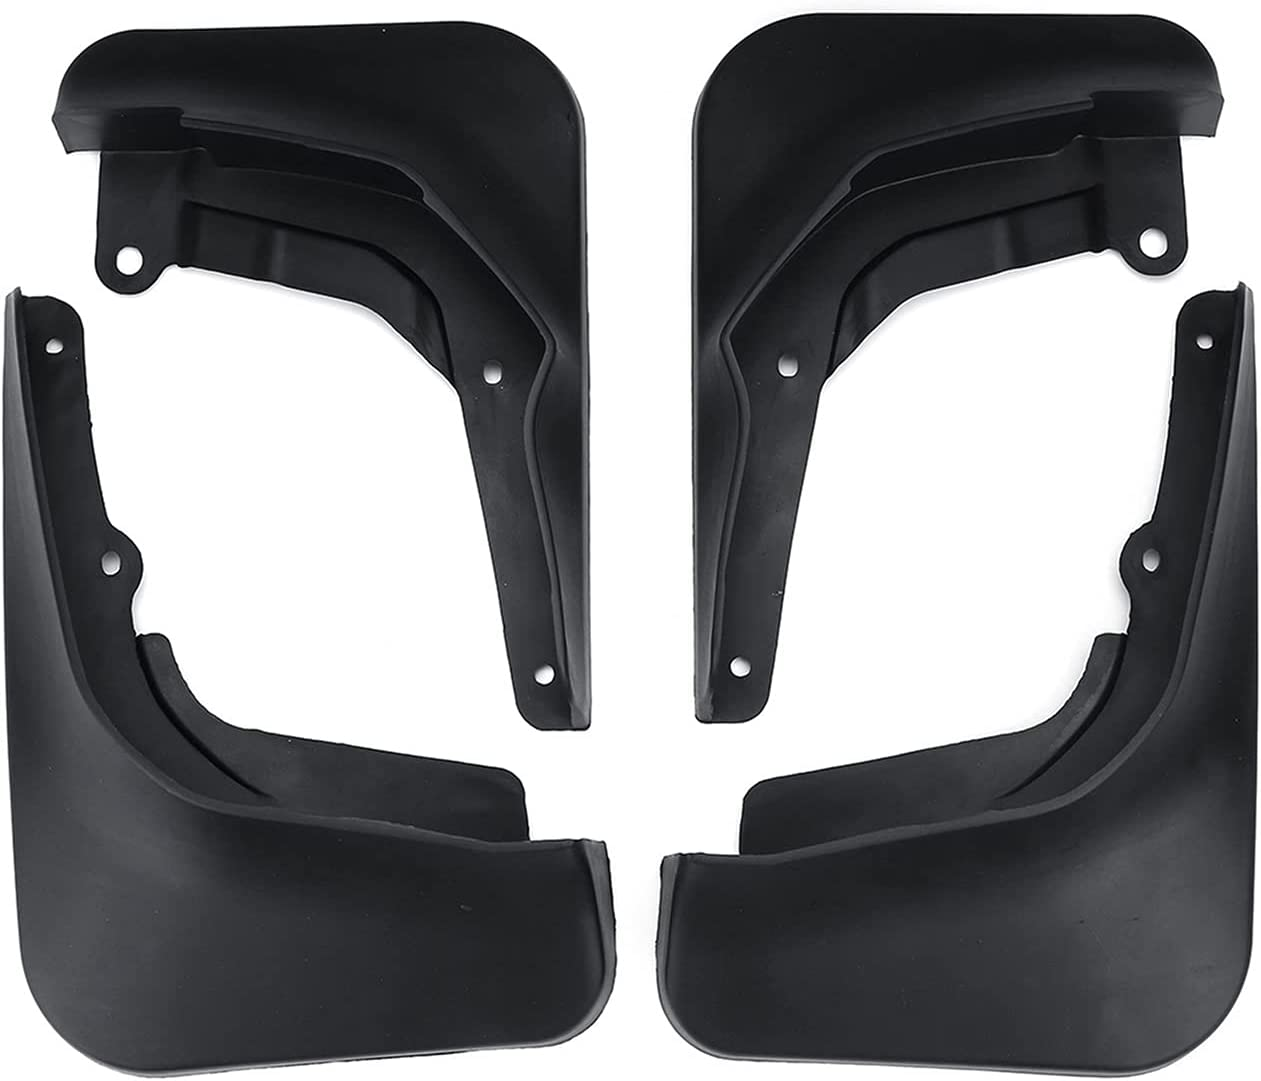 NBBB Car Mudguard for Geely Coolray 2020 2019 Mudguards 2018 Max 50% OFF Long-awaited Mud